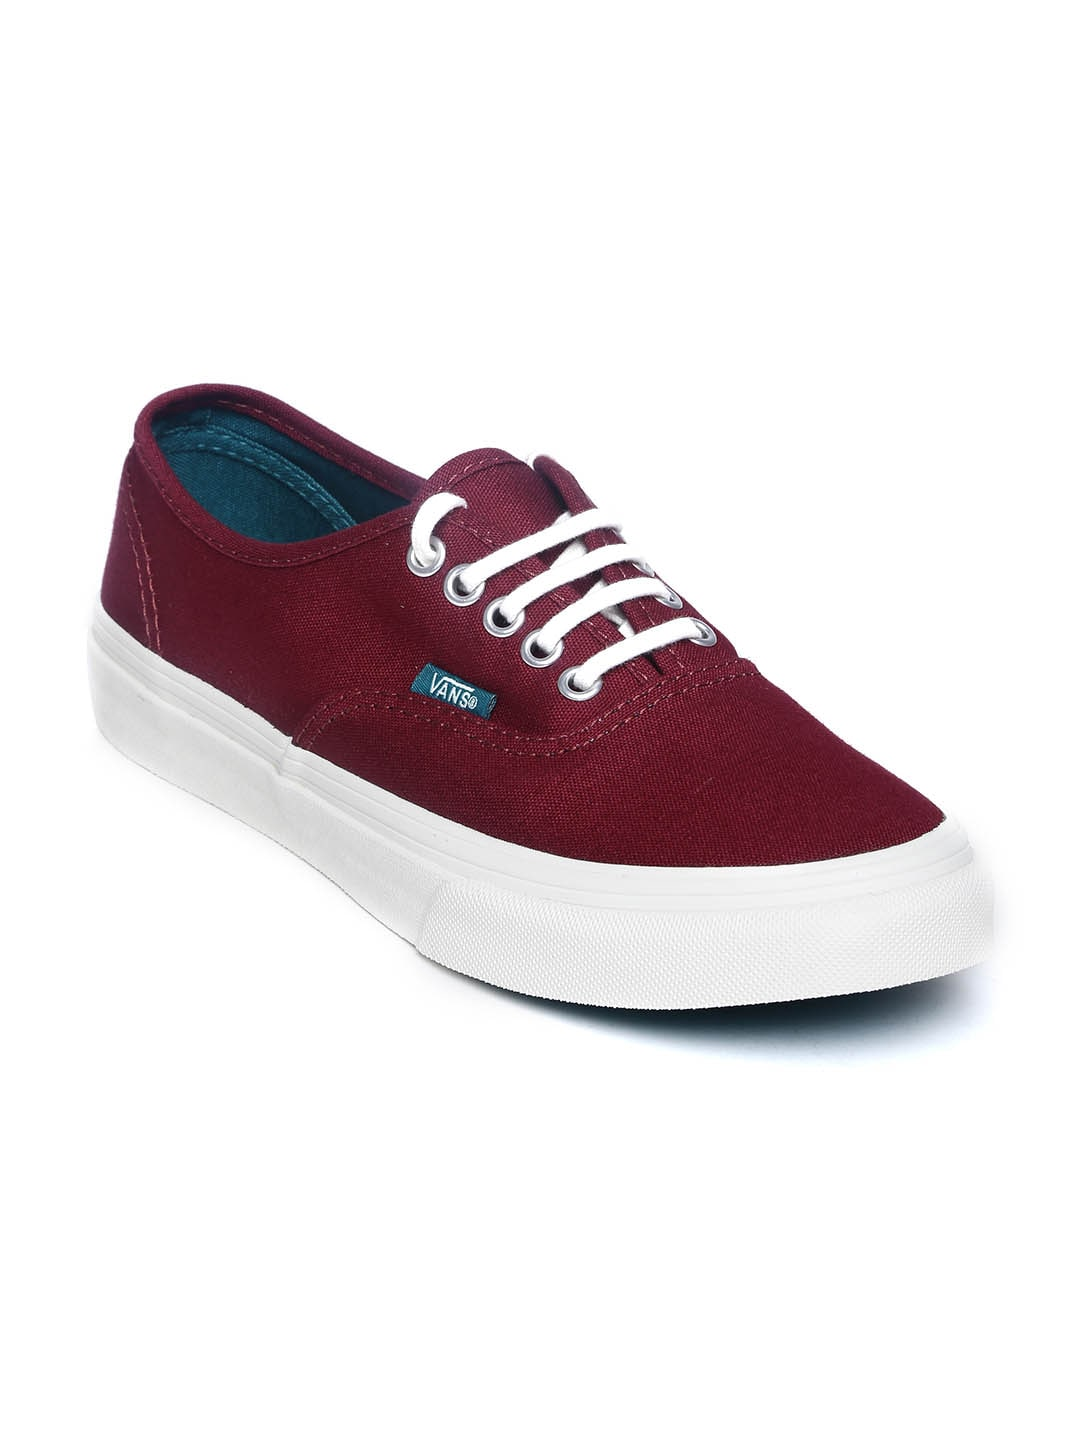 Vans vn-0xg6dxt Women Maroon Casual Shoes - Best Price in India ... ed6098ceb4